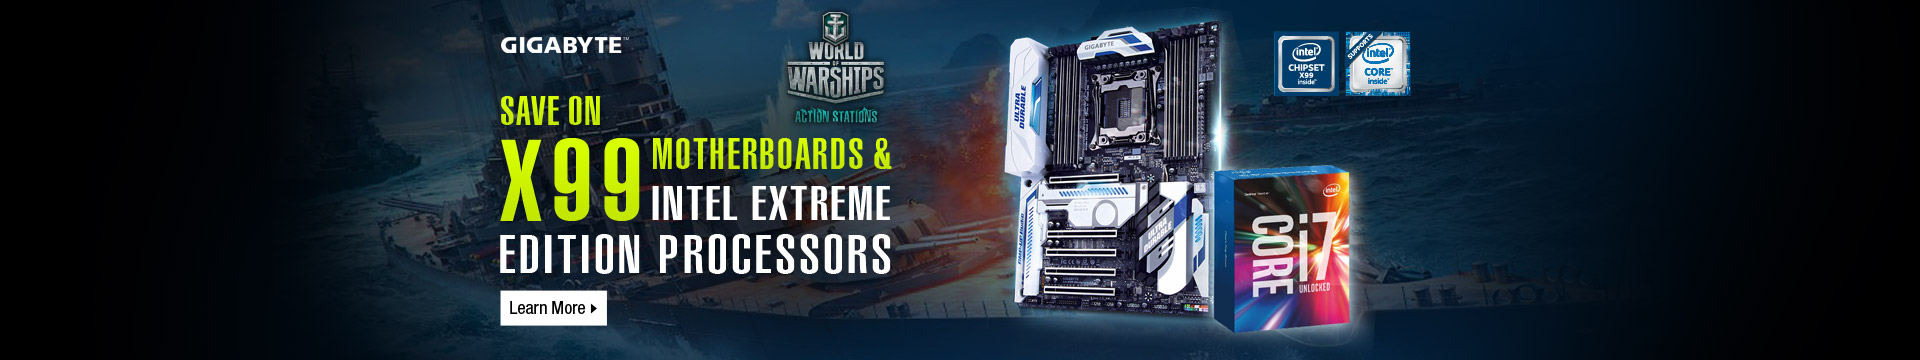 Motherboards & Intel extreme edition processors